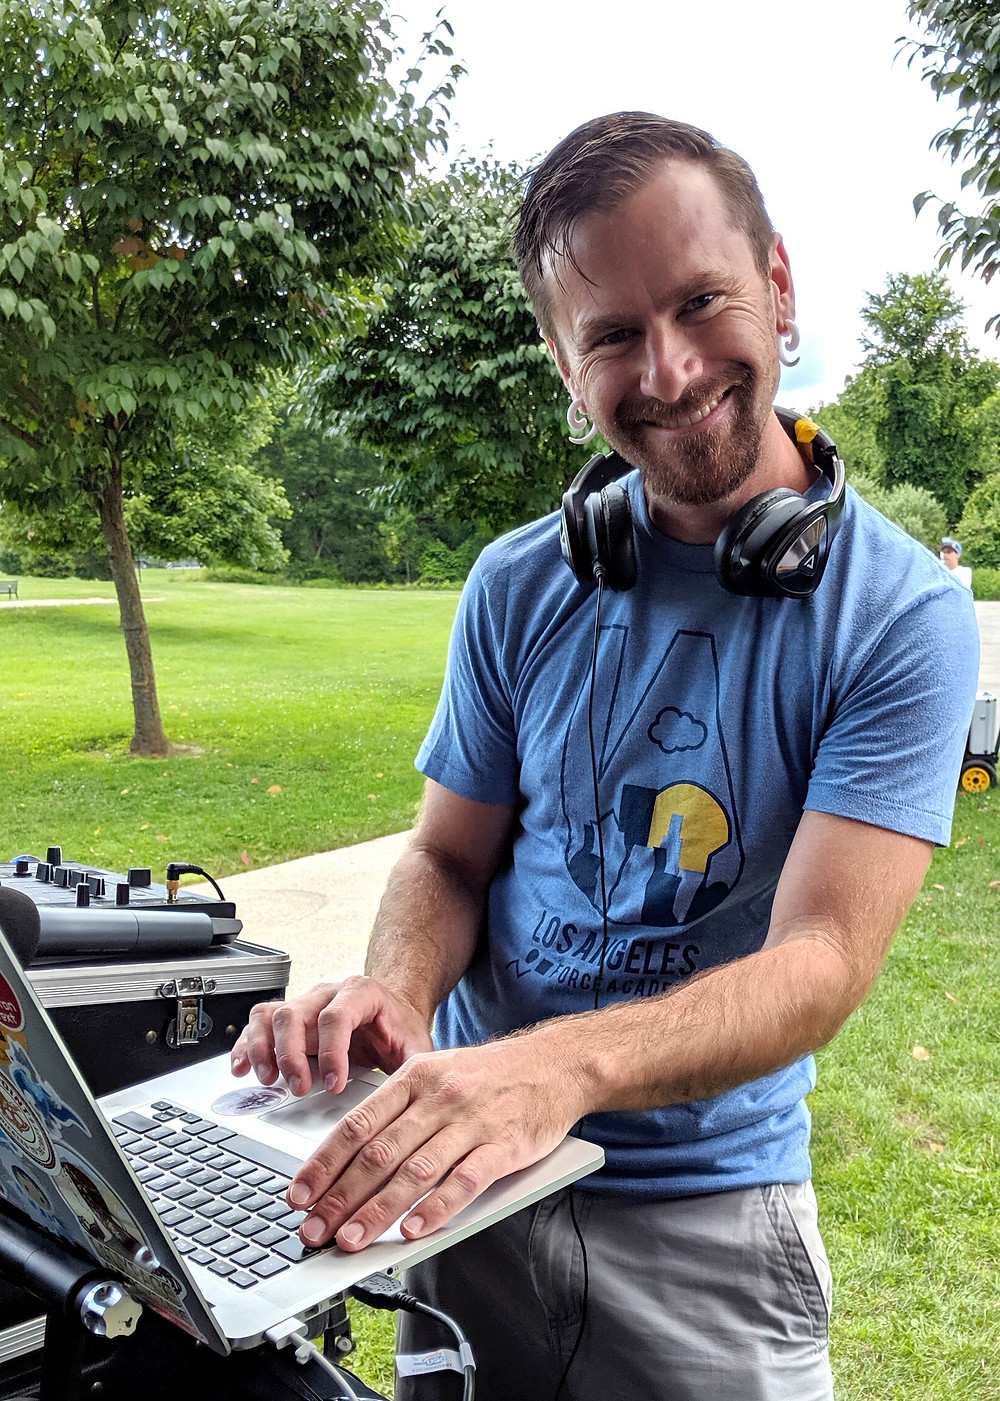 Nate Pepper at the 2019 CRM Science Summer Picnic